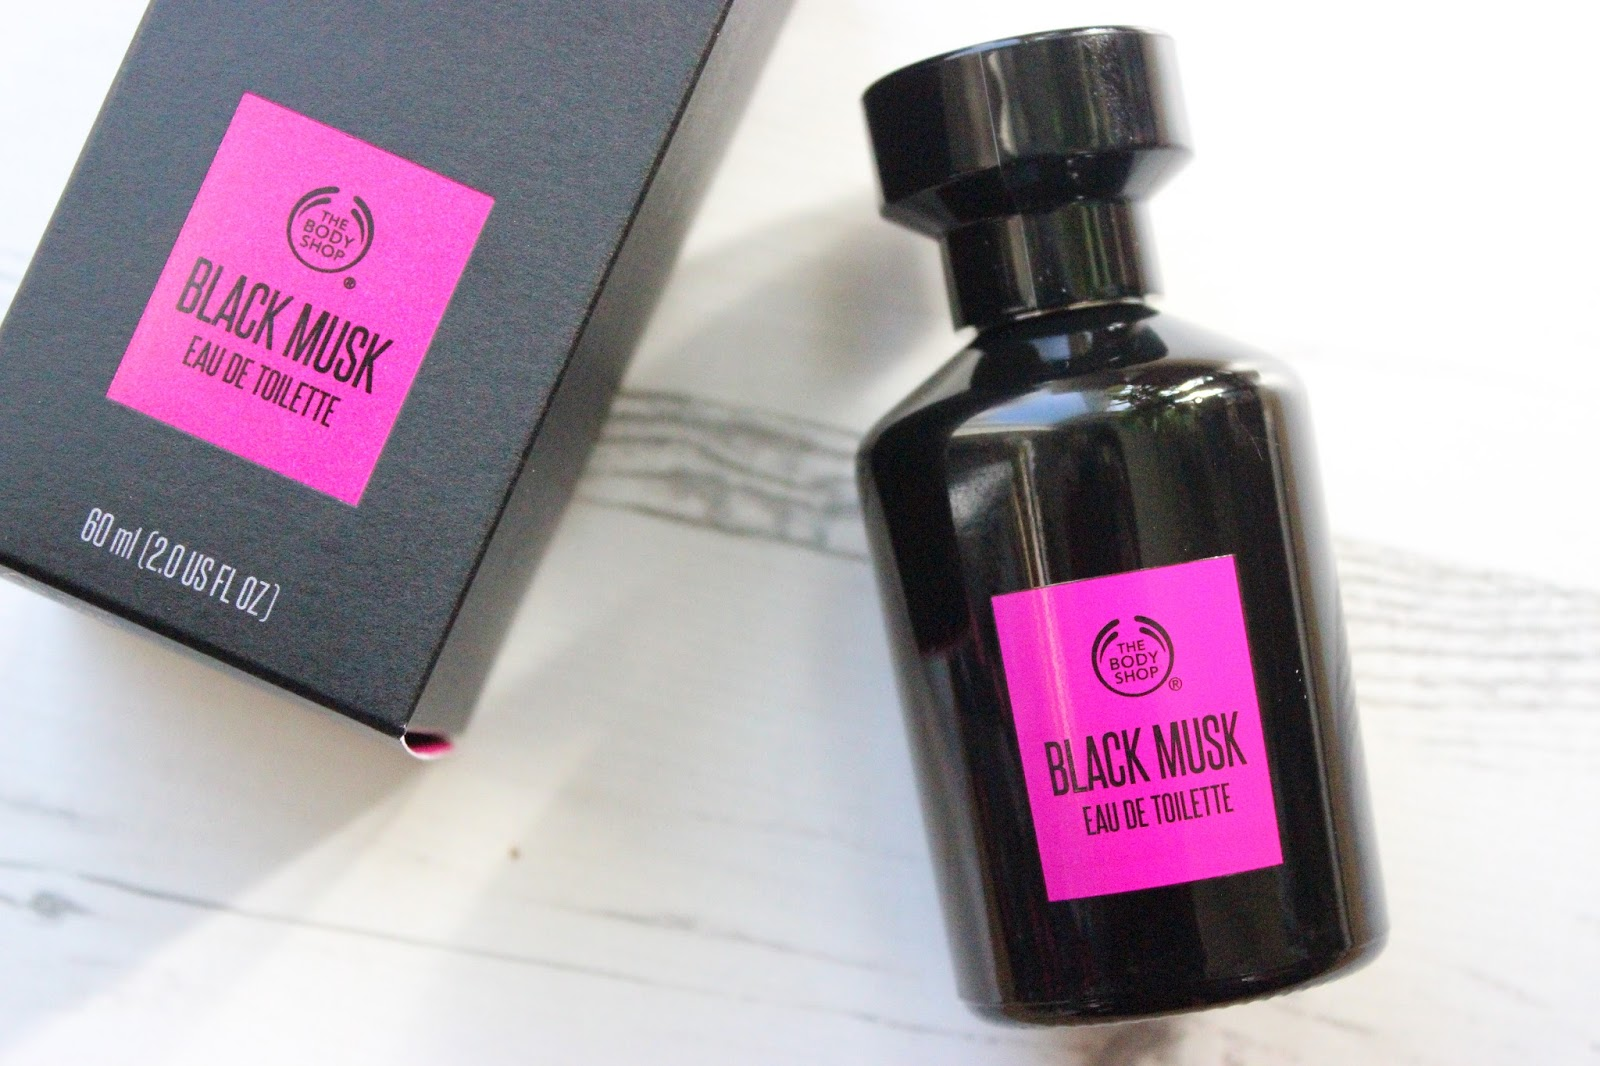 THE BODY SHOP BLACK MUSK EDT discoveriesofself